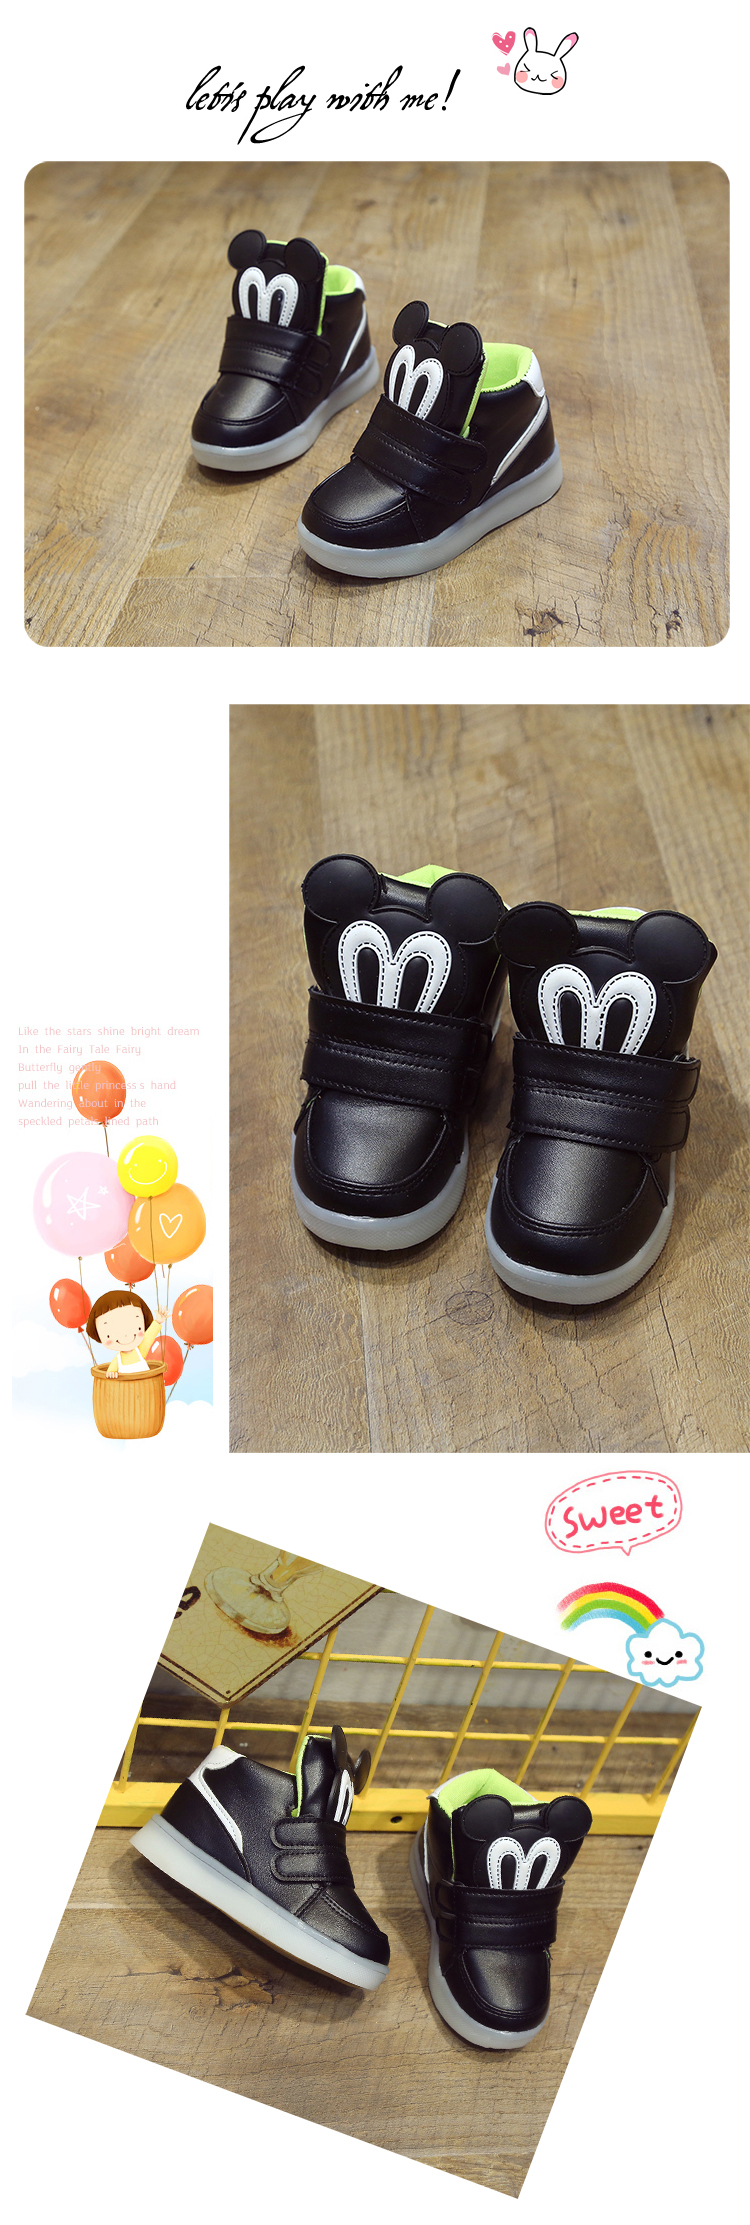 Children Shoes With Light Led Boys Sneakers 2017 New Spring Cartoon Lighted  Sport Fashion Girls Shoes Chaussure Led Enfant - us299